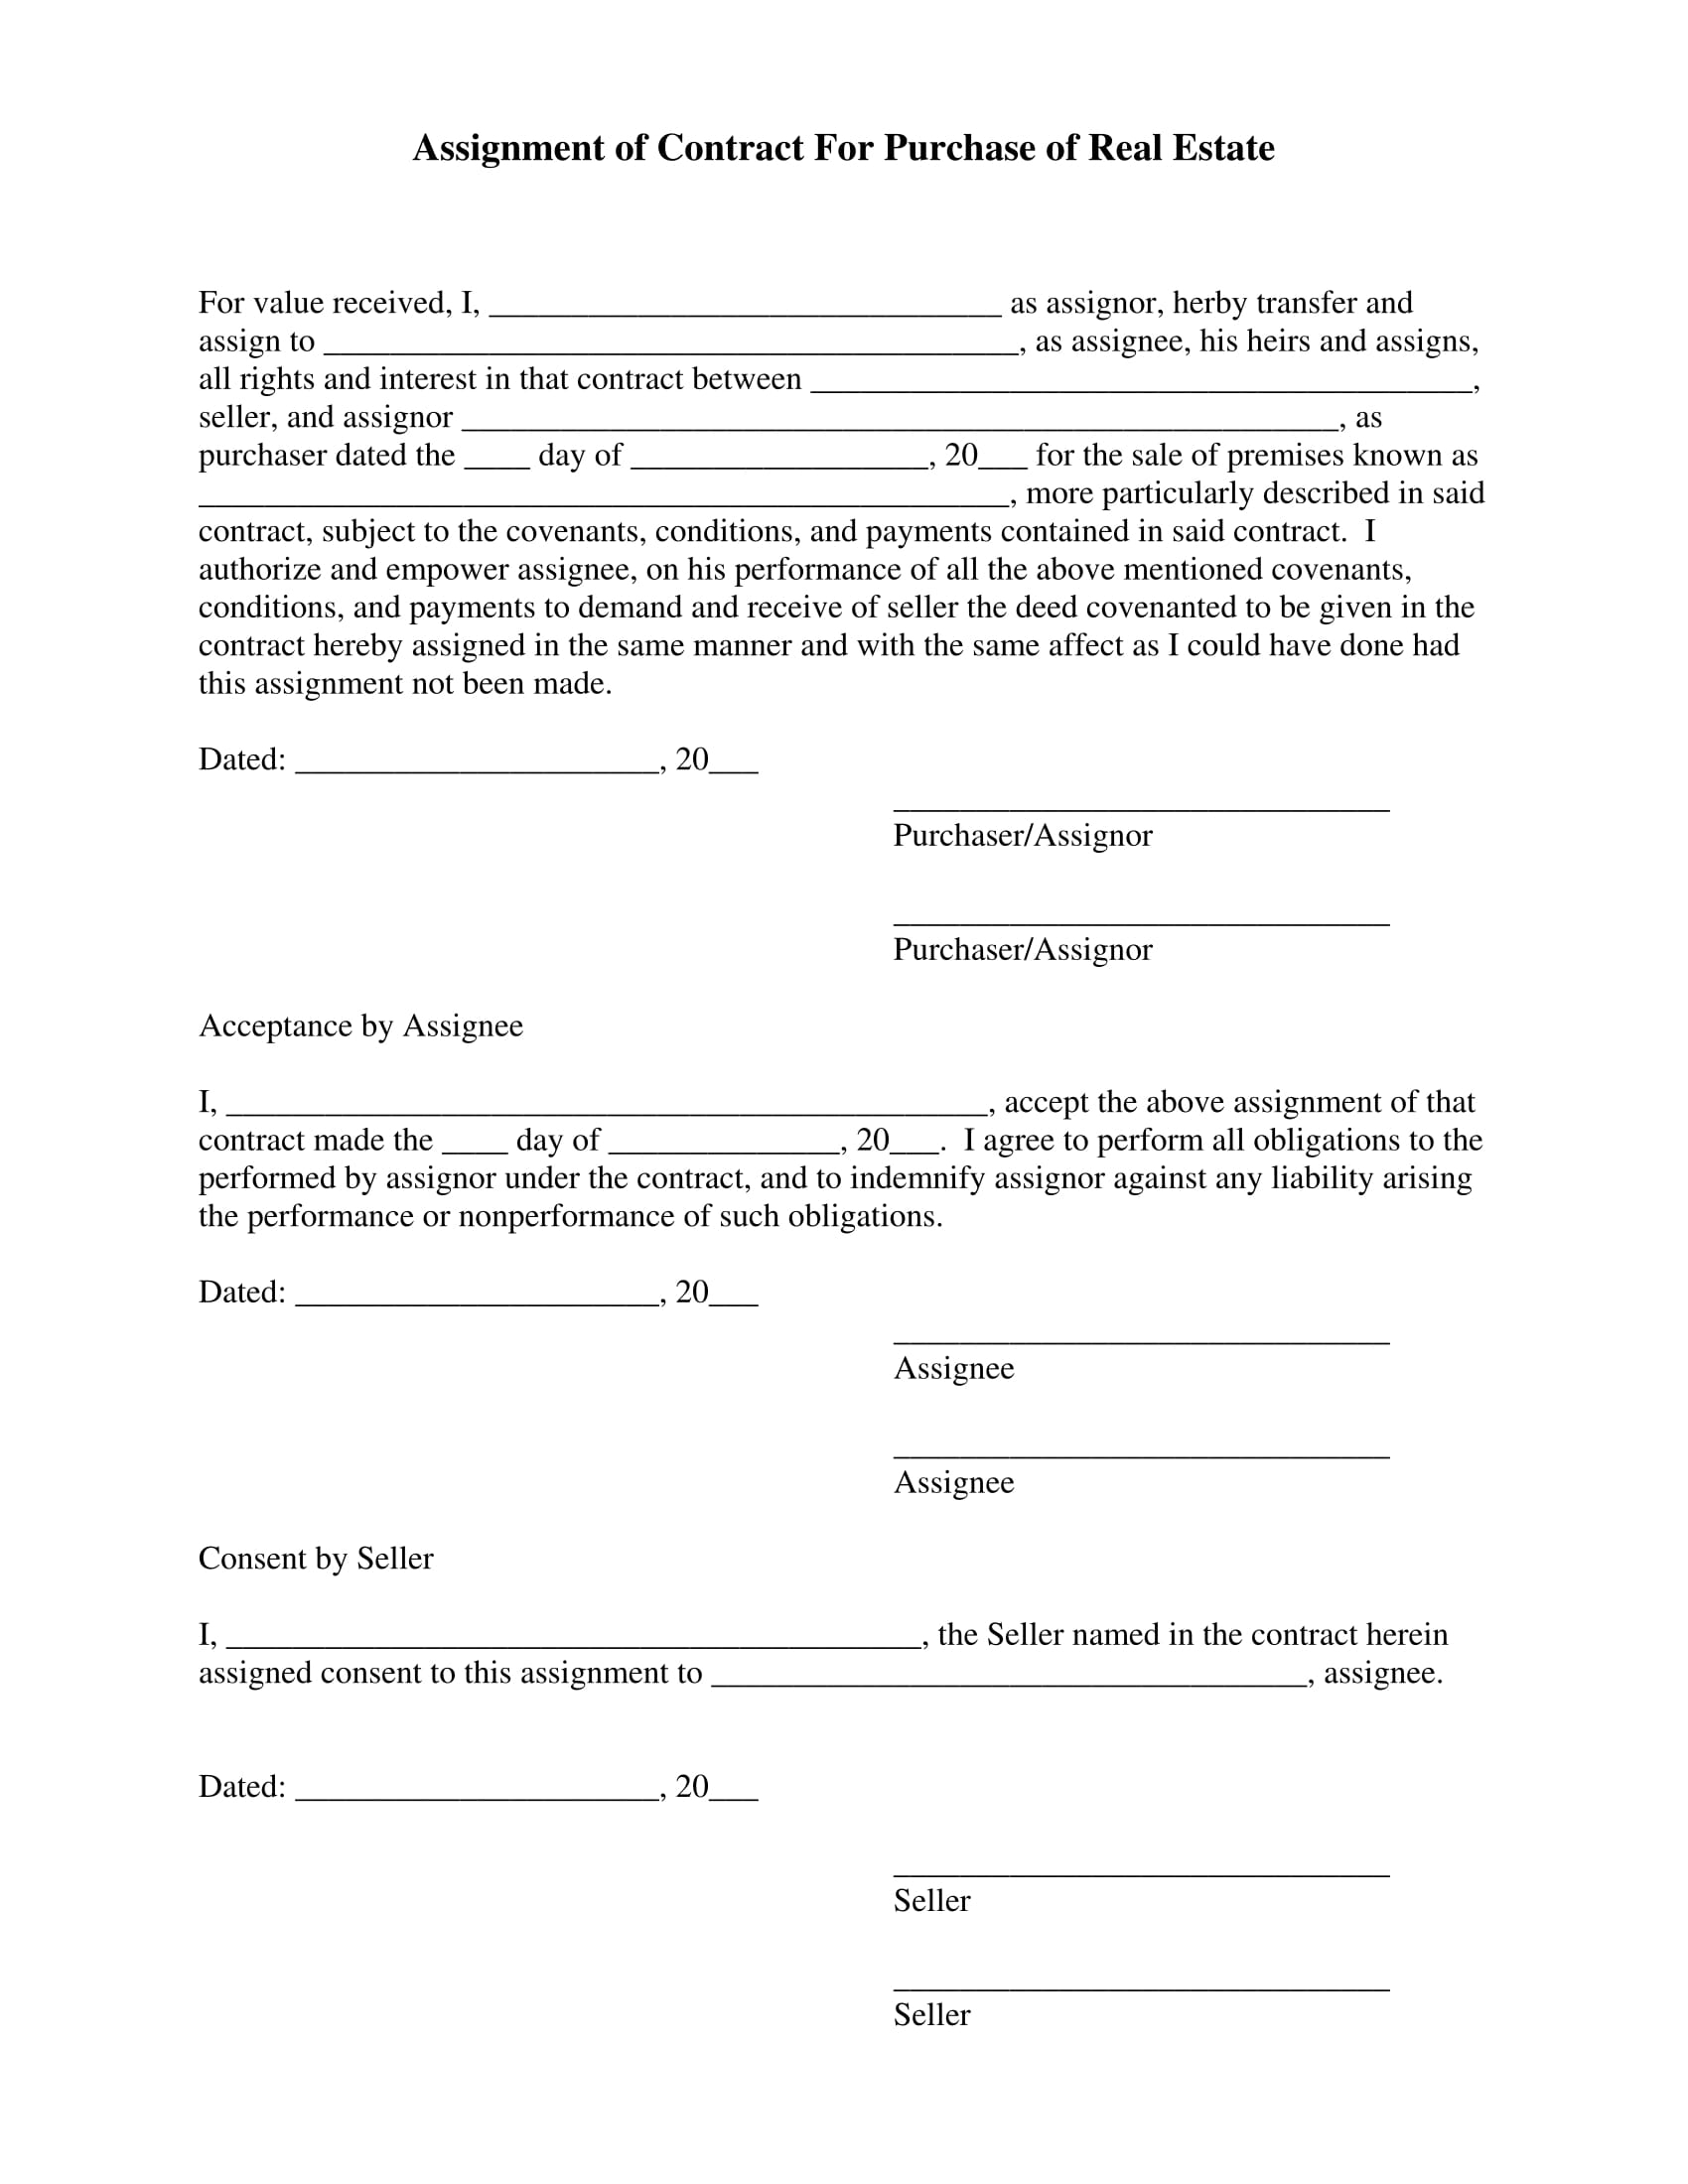 Assignment Of Contract For Purchase Of Real Estate 1